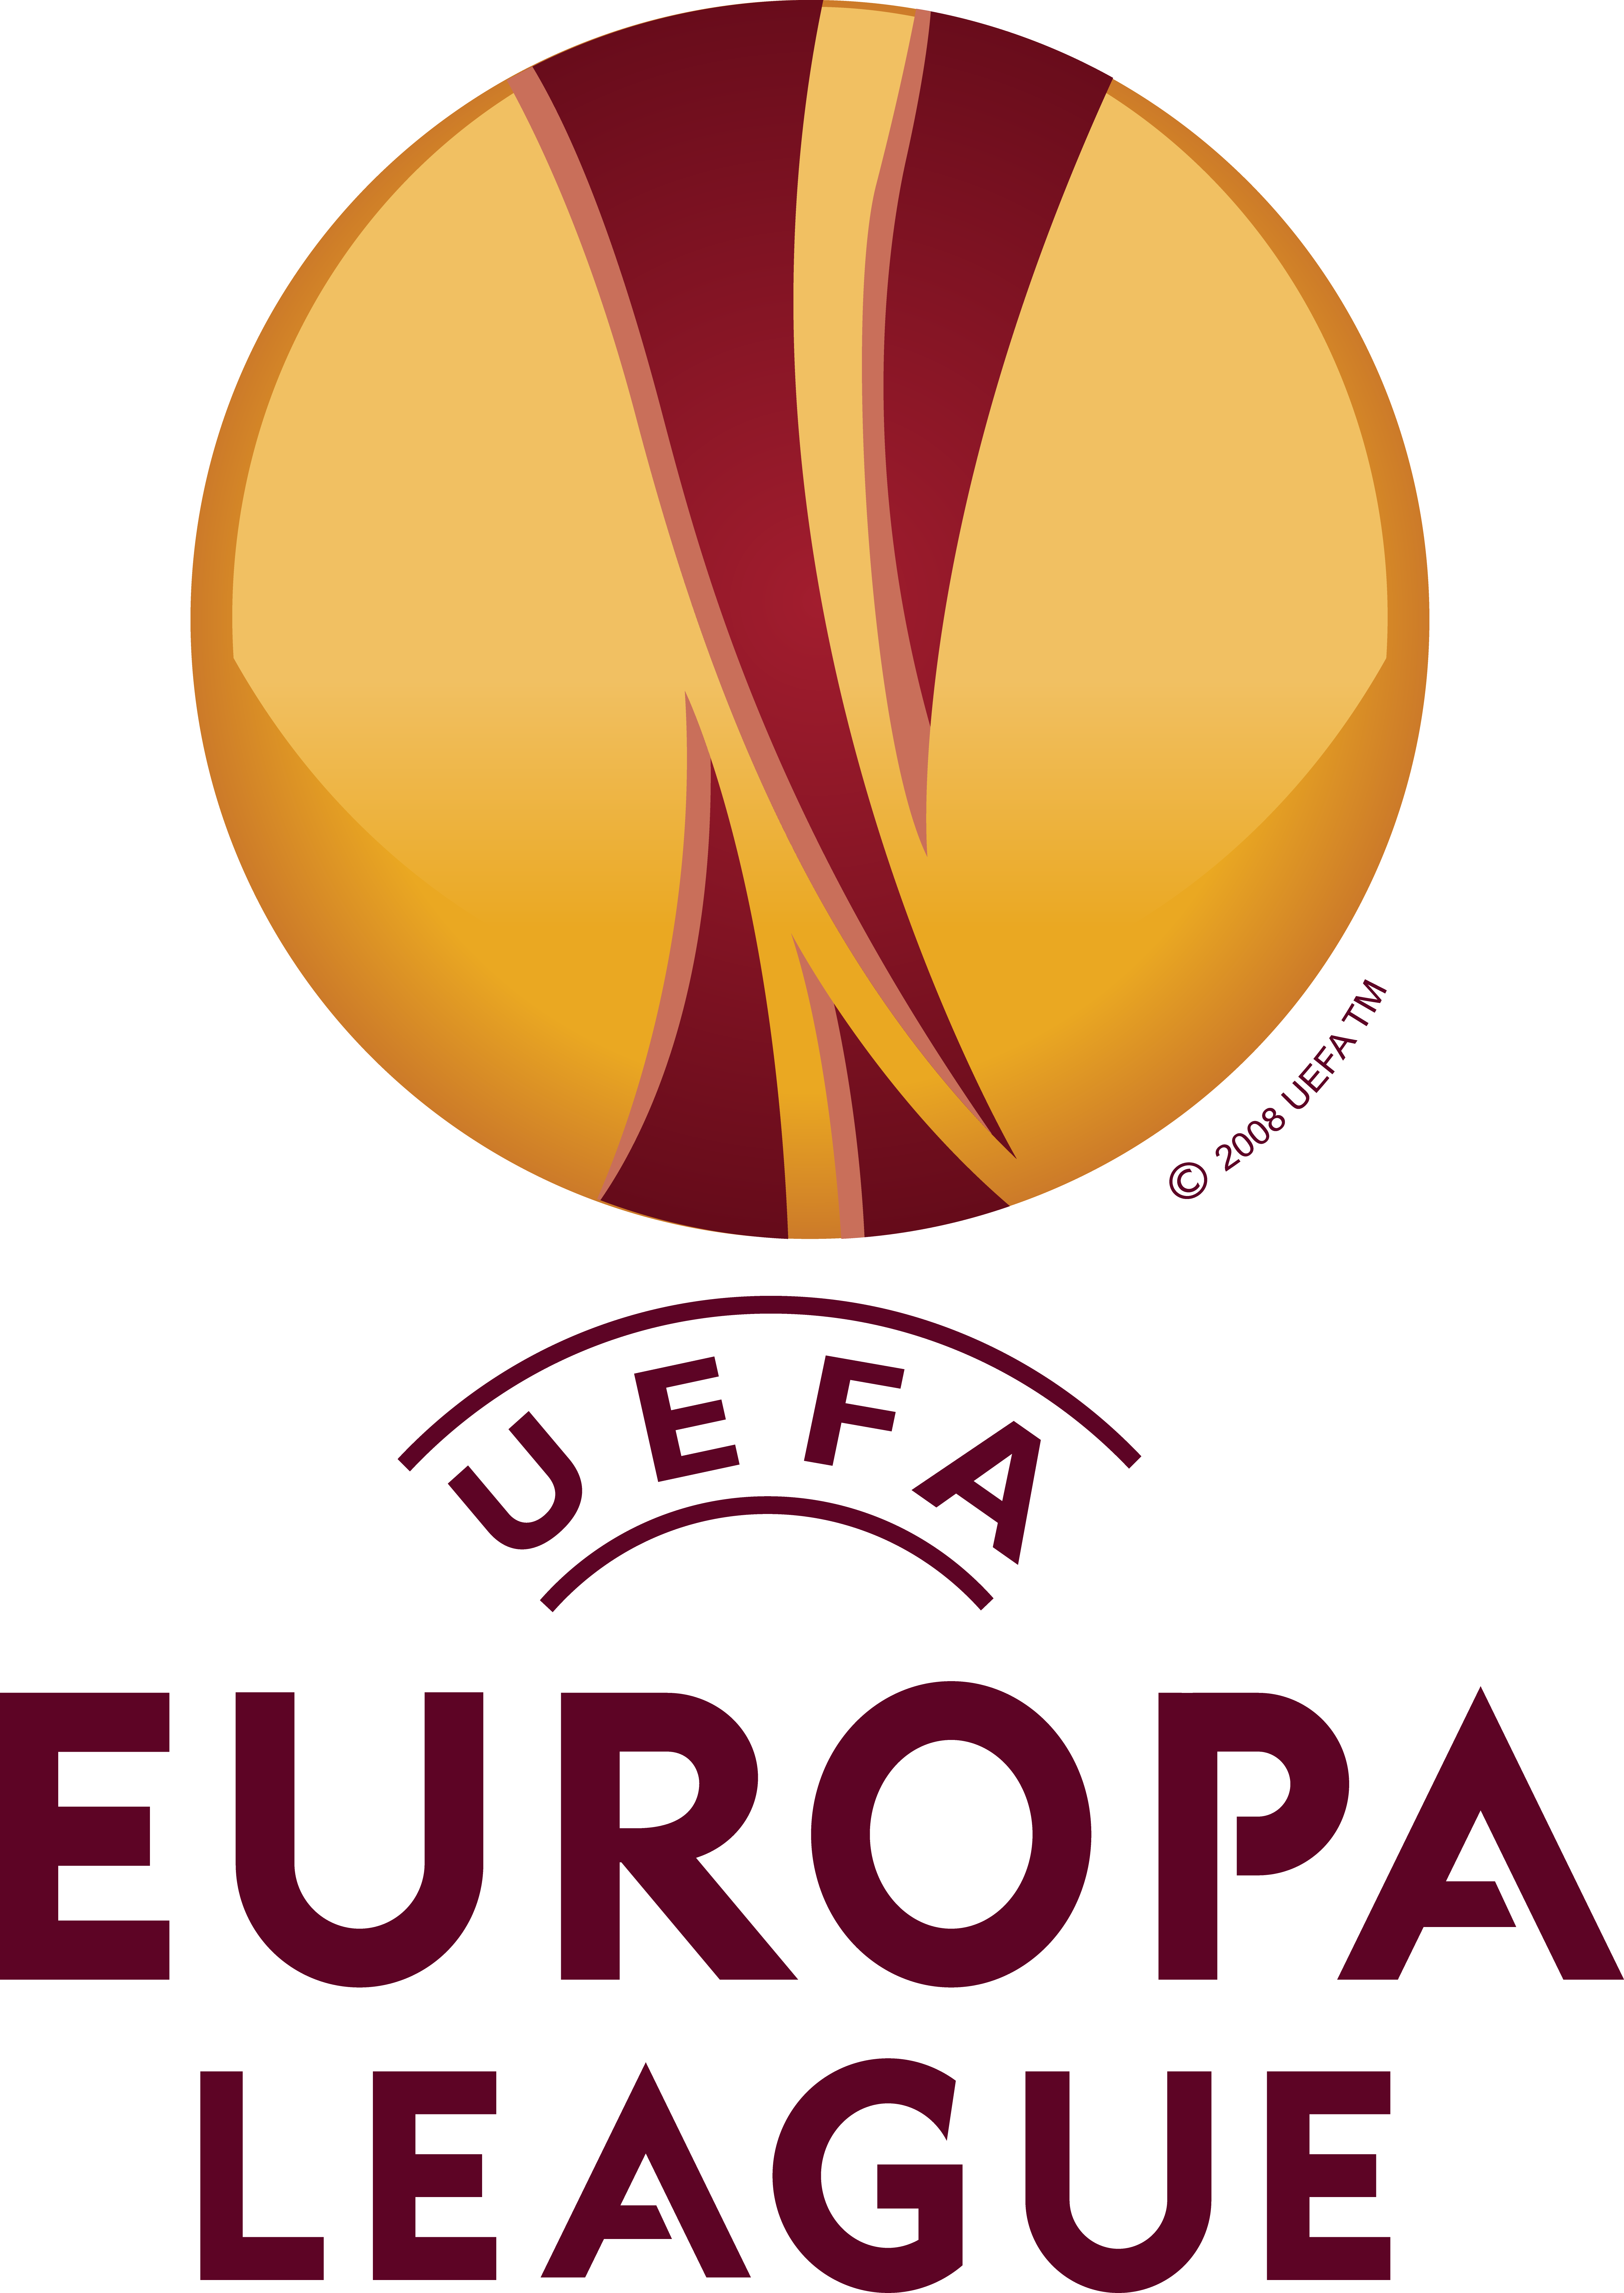 UEFA_Europa_League_logo.png